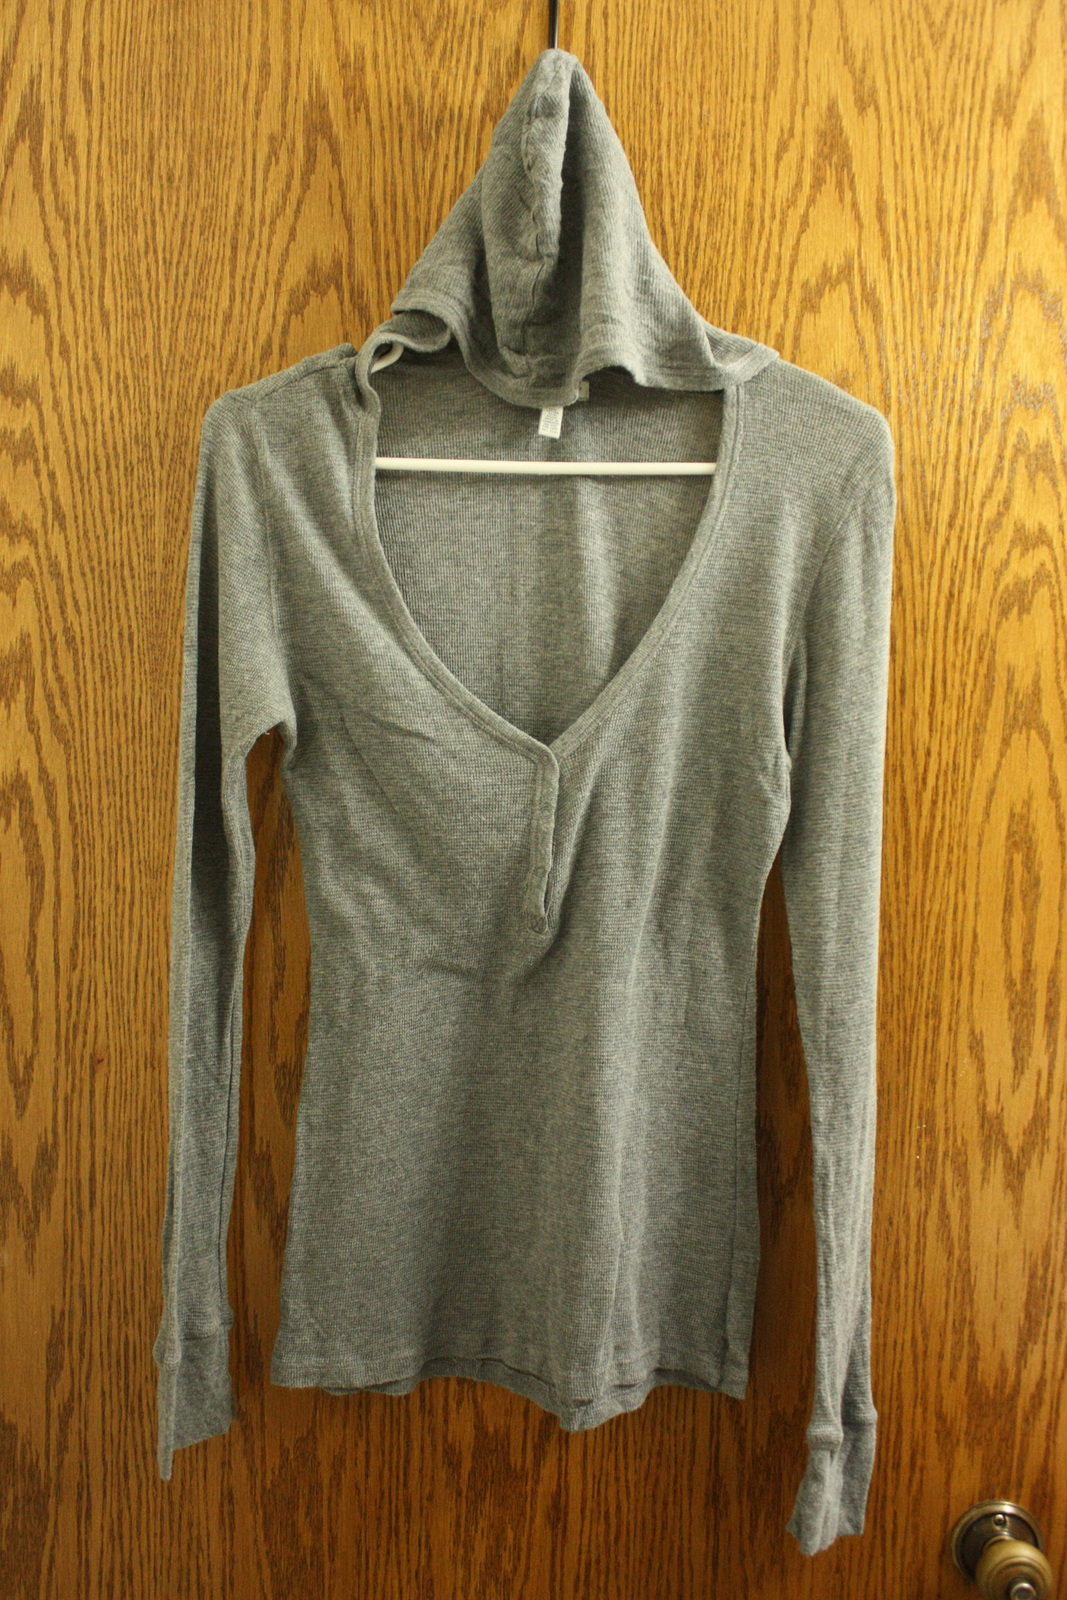 Primary image for Aeropostale Gray Henley Shirt with Hood - Size L Juniors